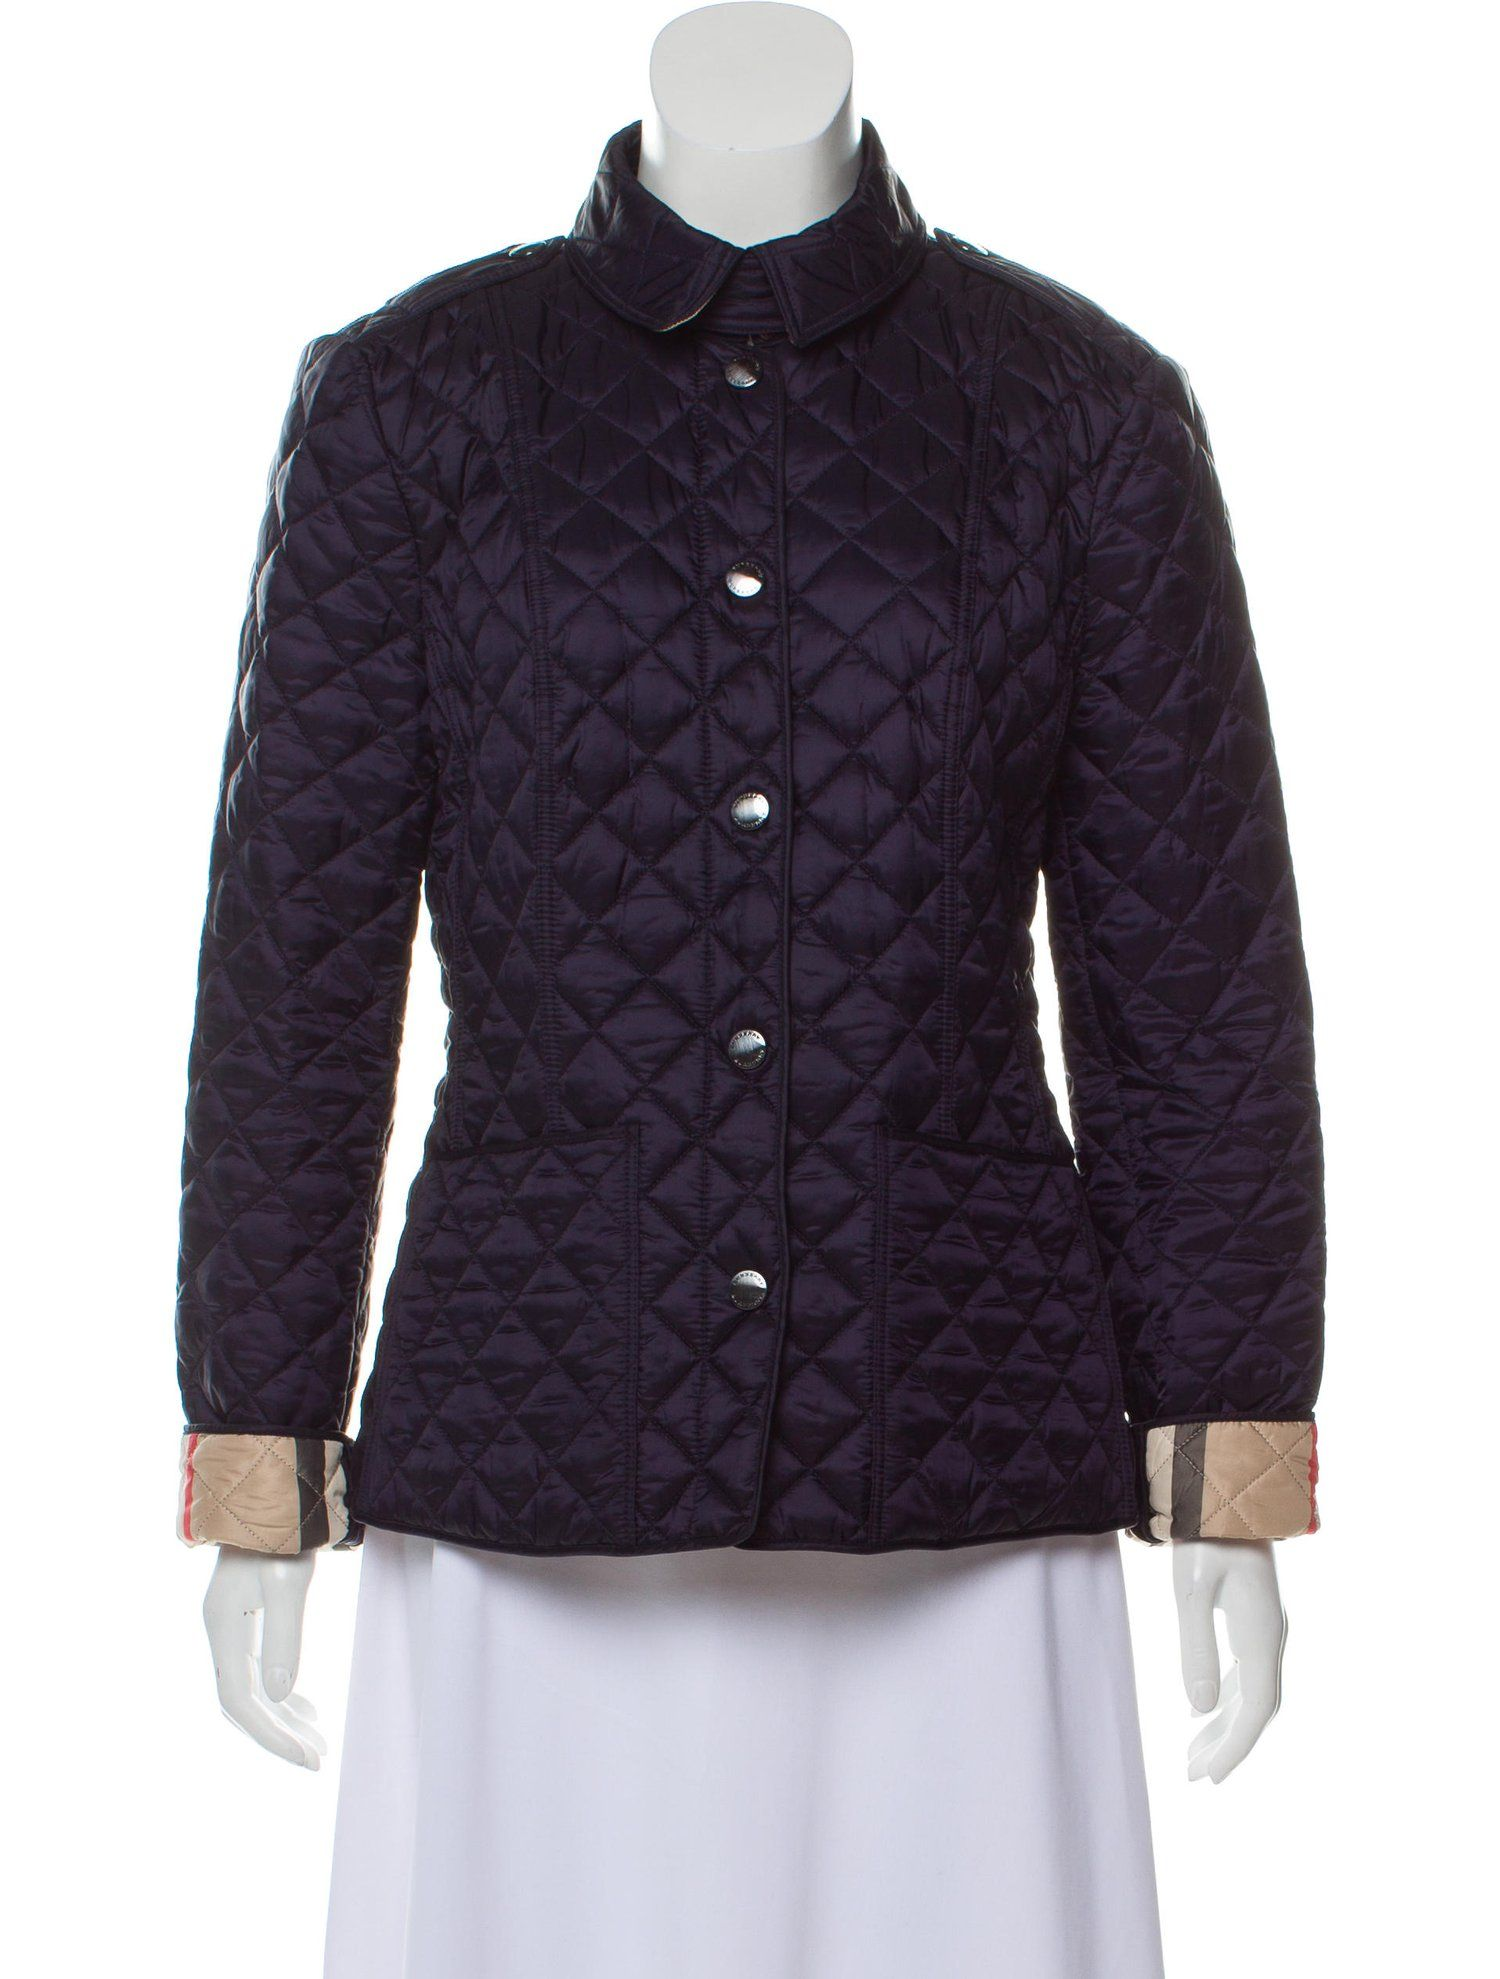 Burberry Quilted Snap Up Jacket Quilted Burberry Jacket Burberry Quilted Jacket Jackets Quilted Jacket